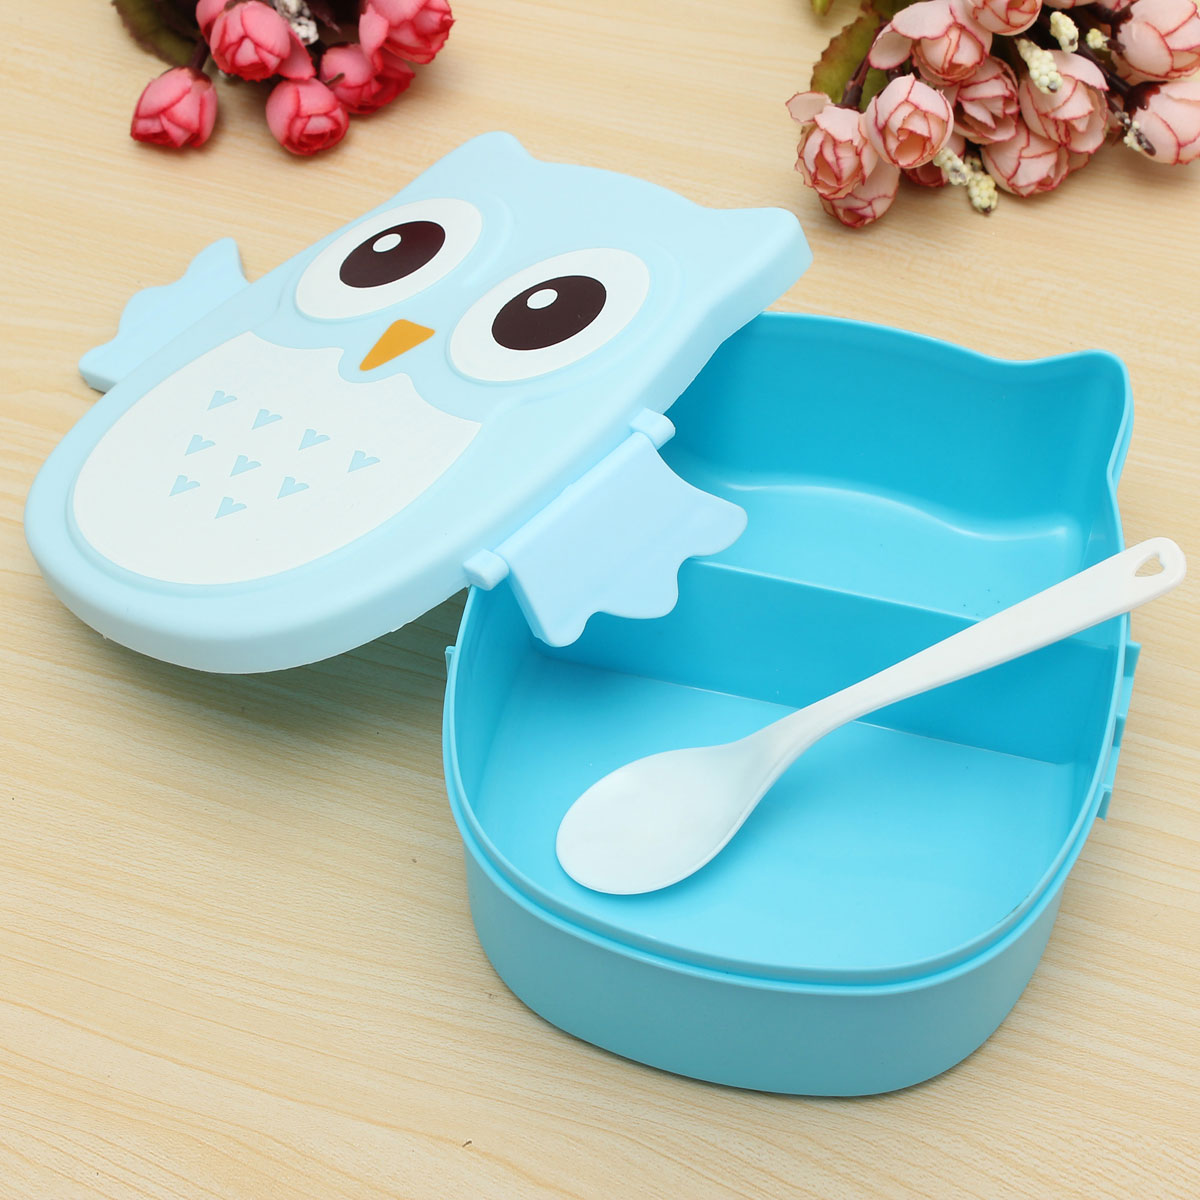 owl lunch bento box plastic cartoon lunch box food container bento box blue lazada malaysia. Black Bedroom Furniture Sets. Home Design Ideas